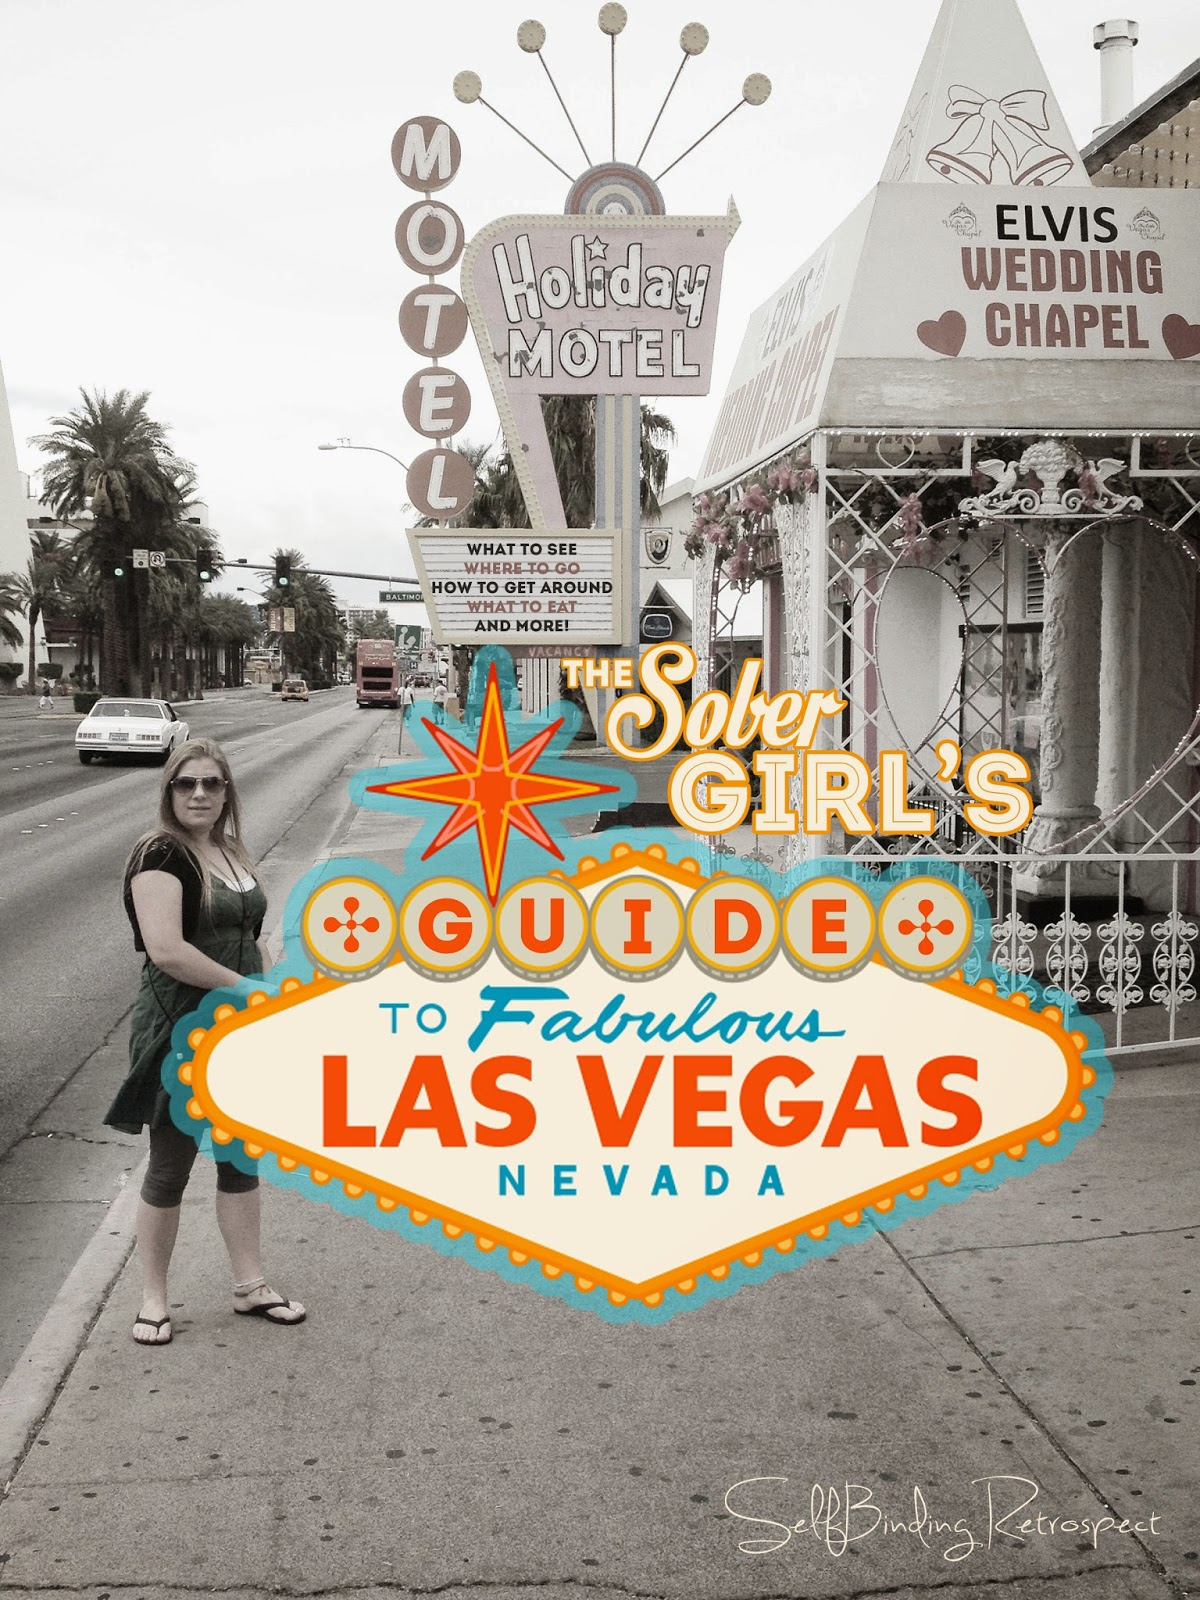 The Sober Girl's Guide To Las Vegas - SelfBinding Retrospect by Alanna Rusnak